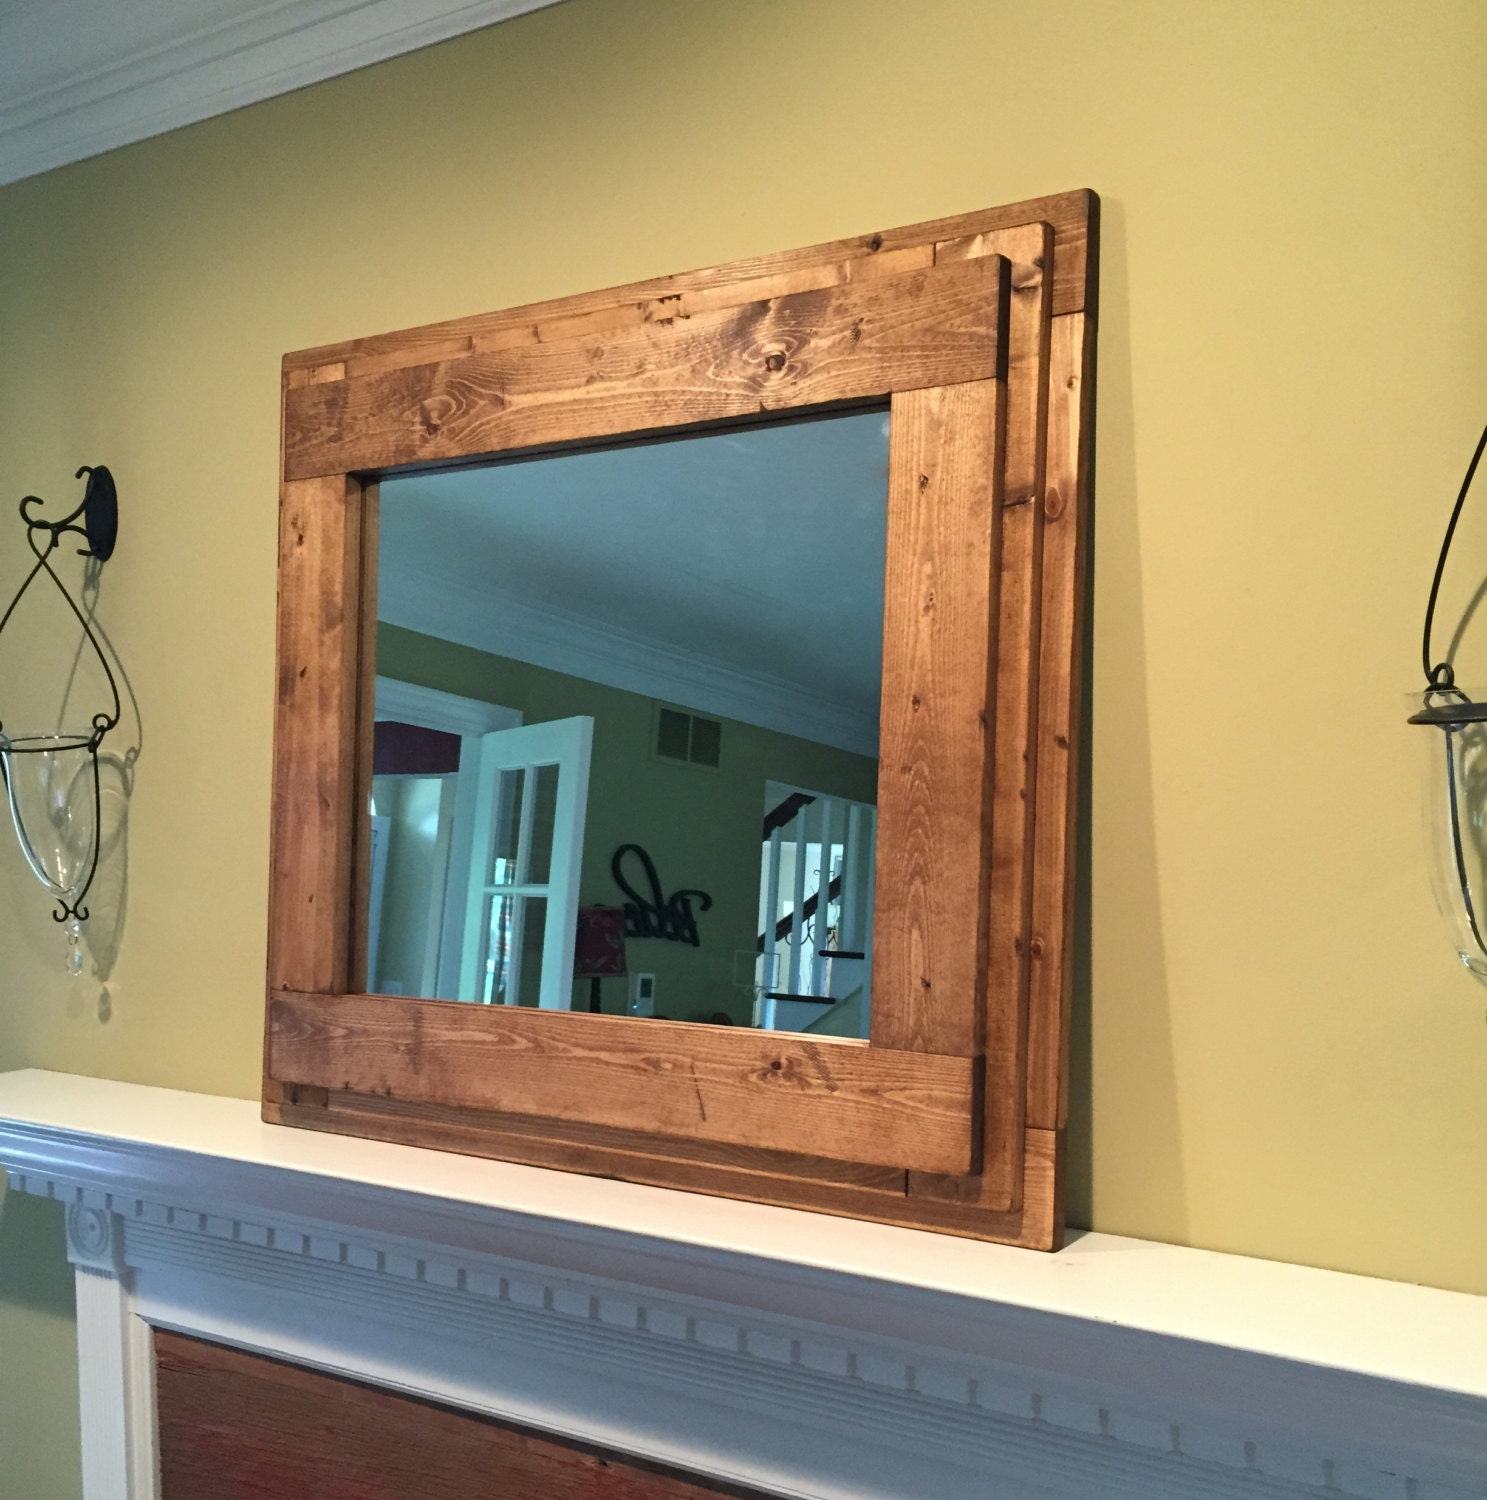 The farm house mantle vanity bathroom mirror